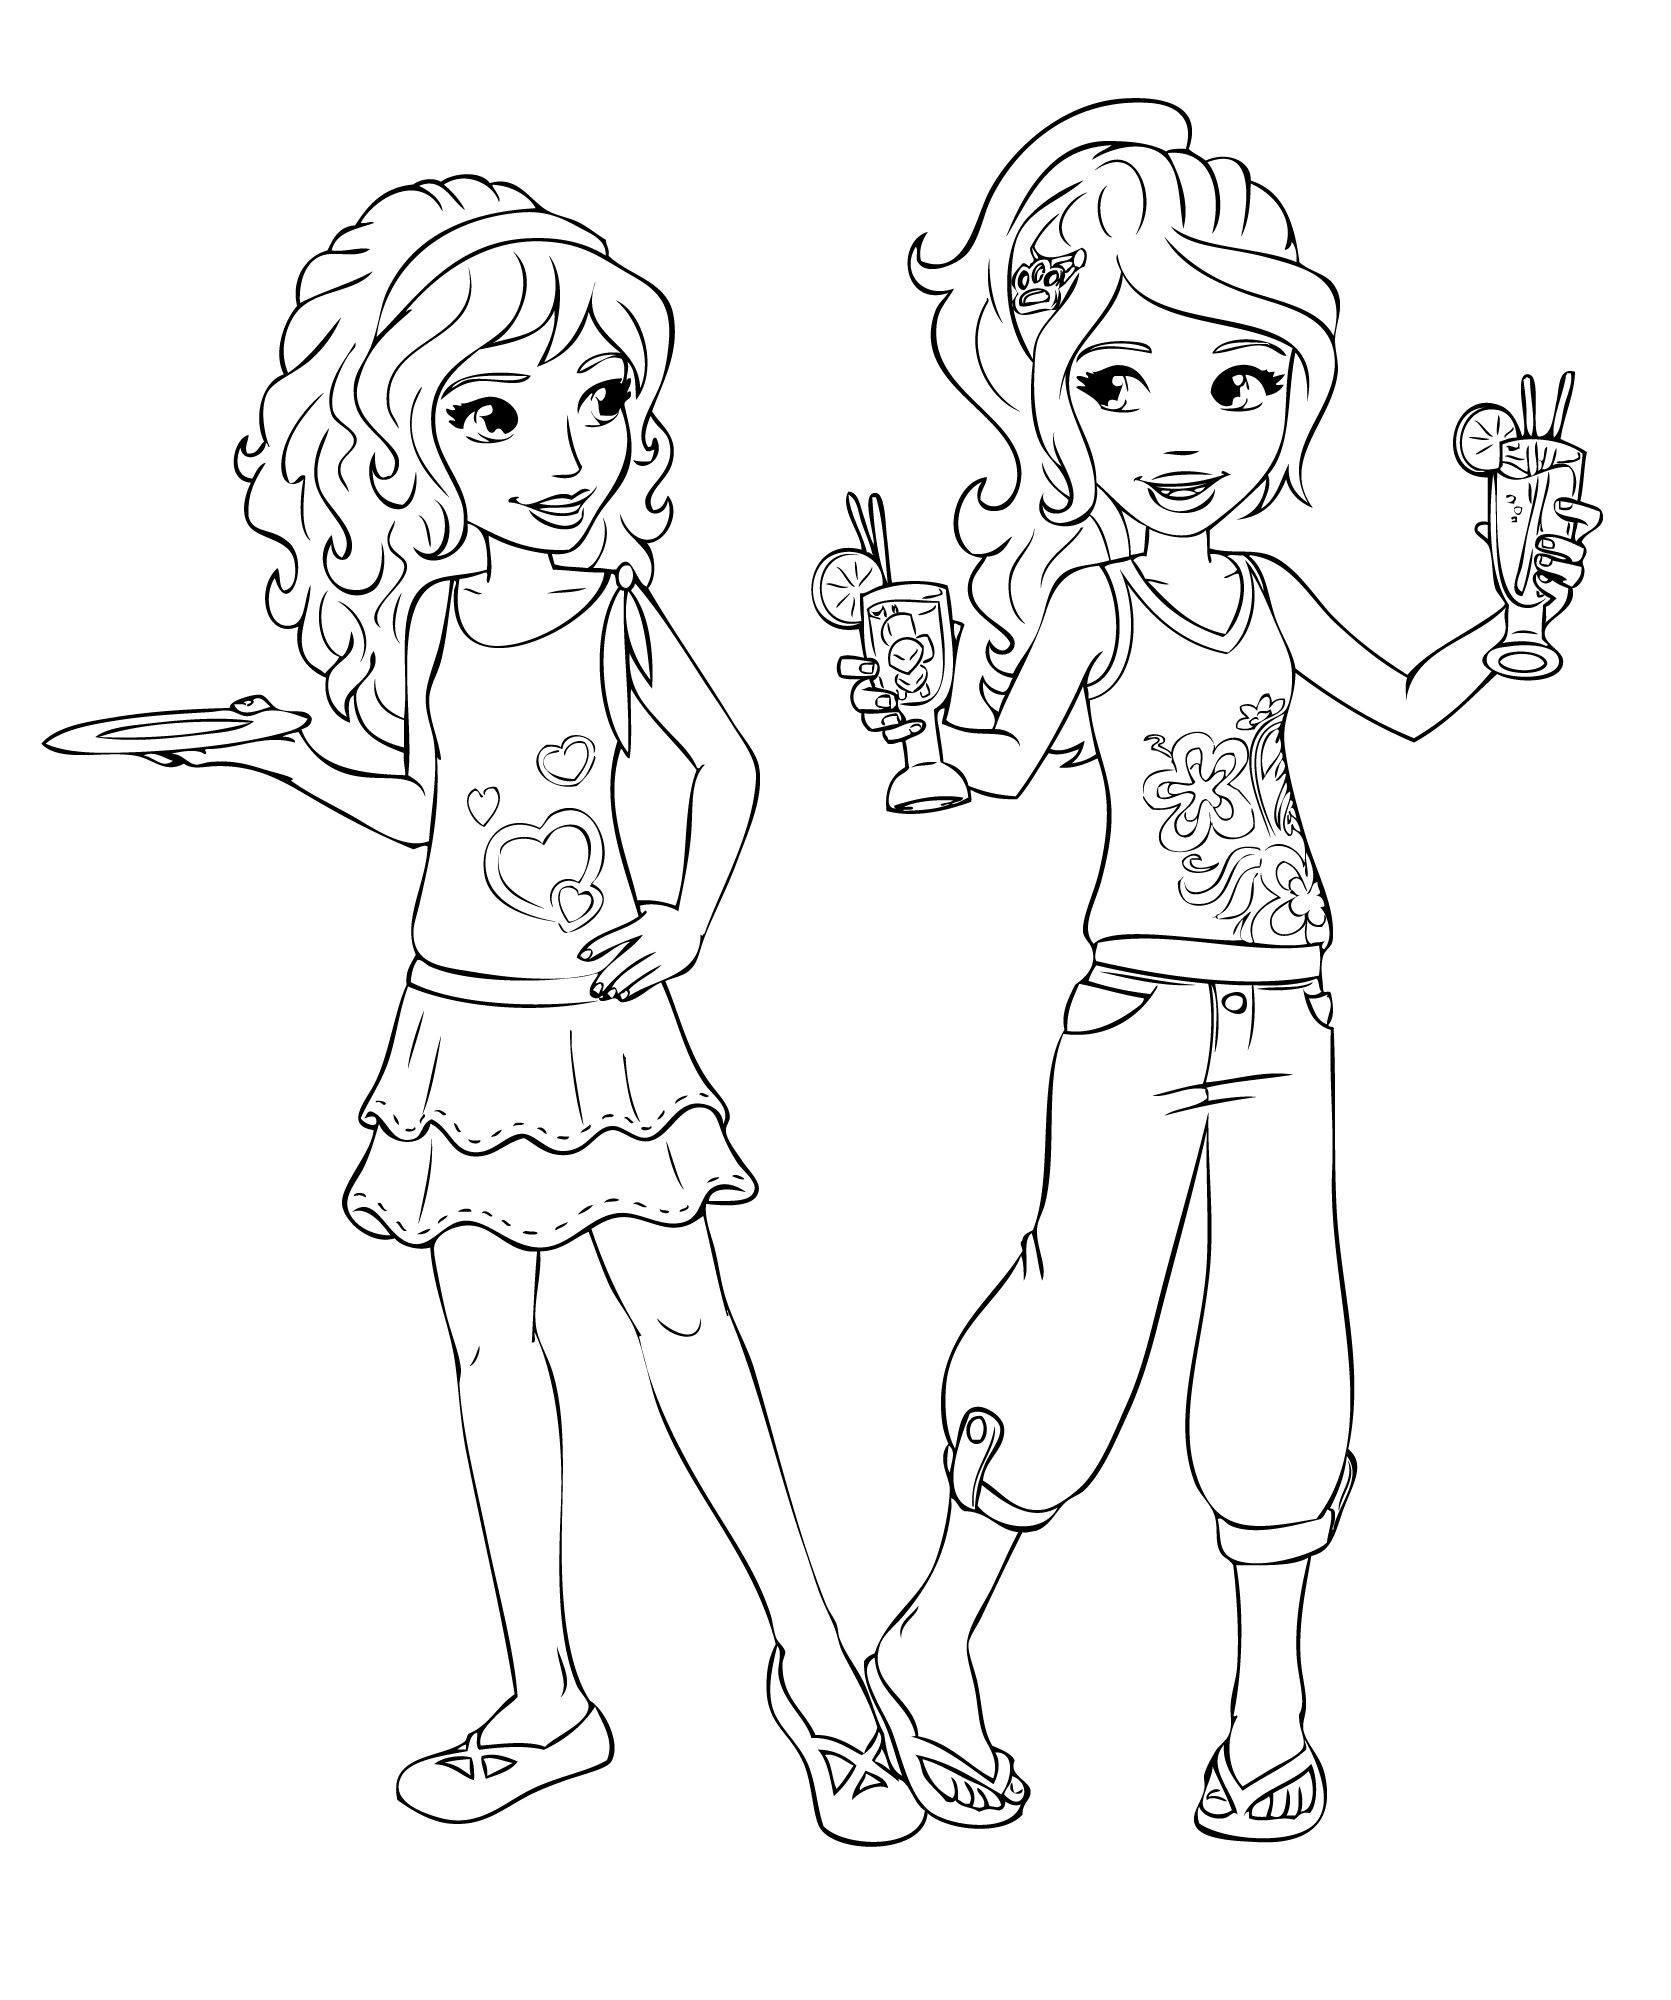 Excellent Lego Friends Coloring Pages Large Coloring Pages Pictures Best Friends Coloring Pages Lego Coloring Lego Coloring Pages Superhero Coloring Pages